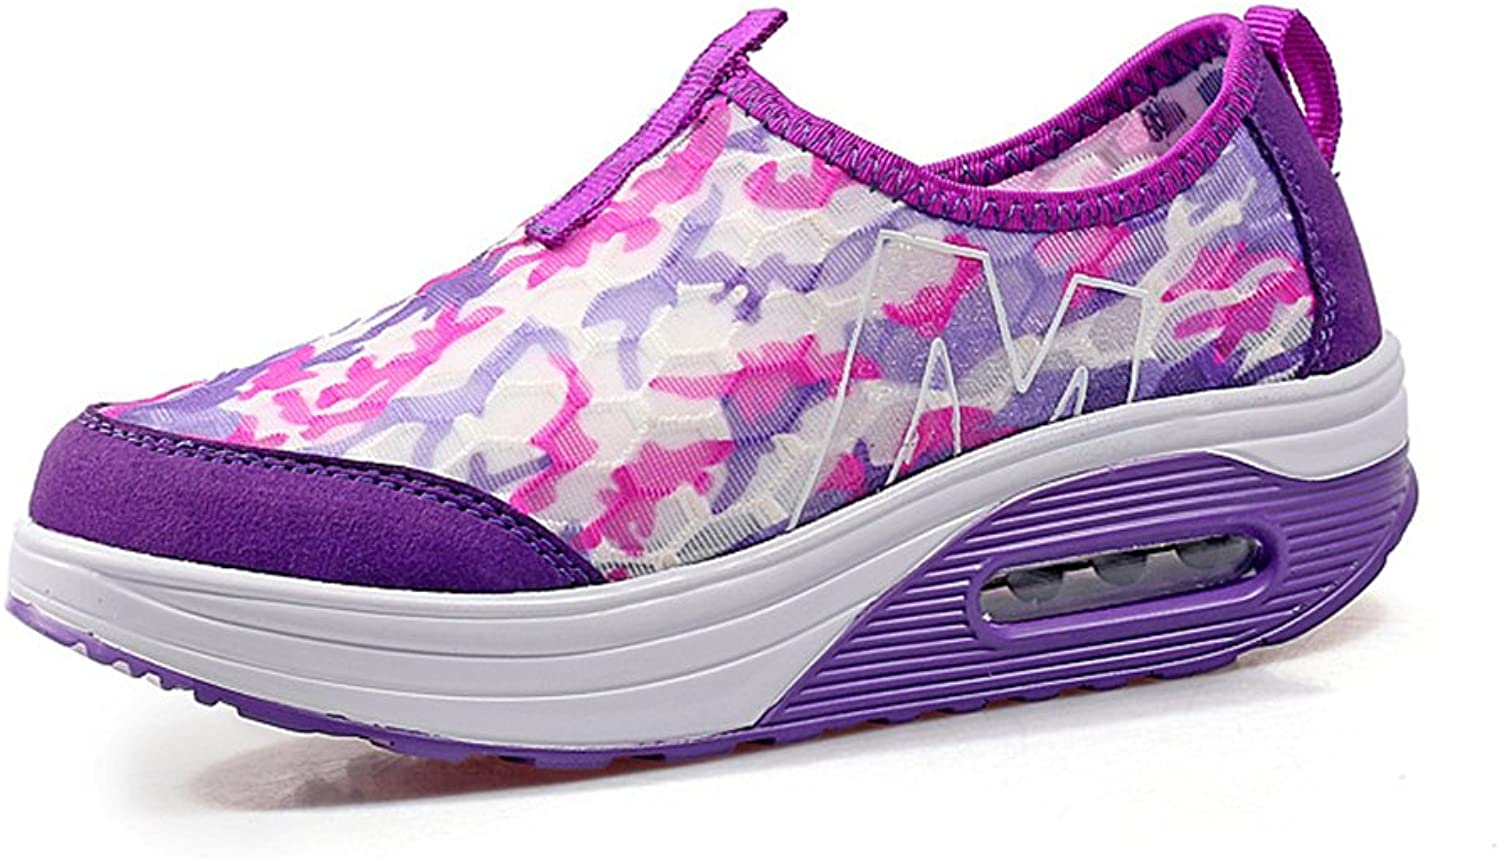 pink town Classic Printing Women Platform Wedges shoes Height-Increasing Animal Pattern Fitness Work Out Sneaker